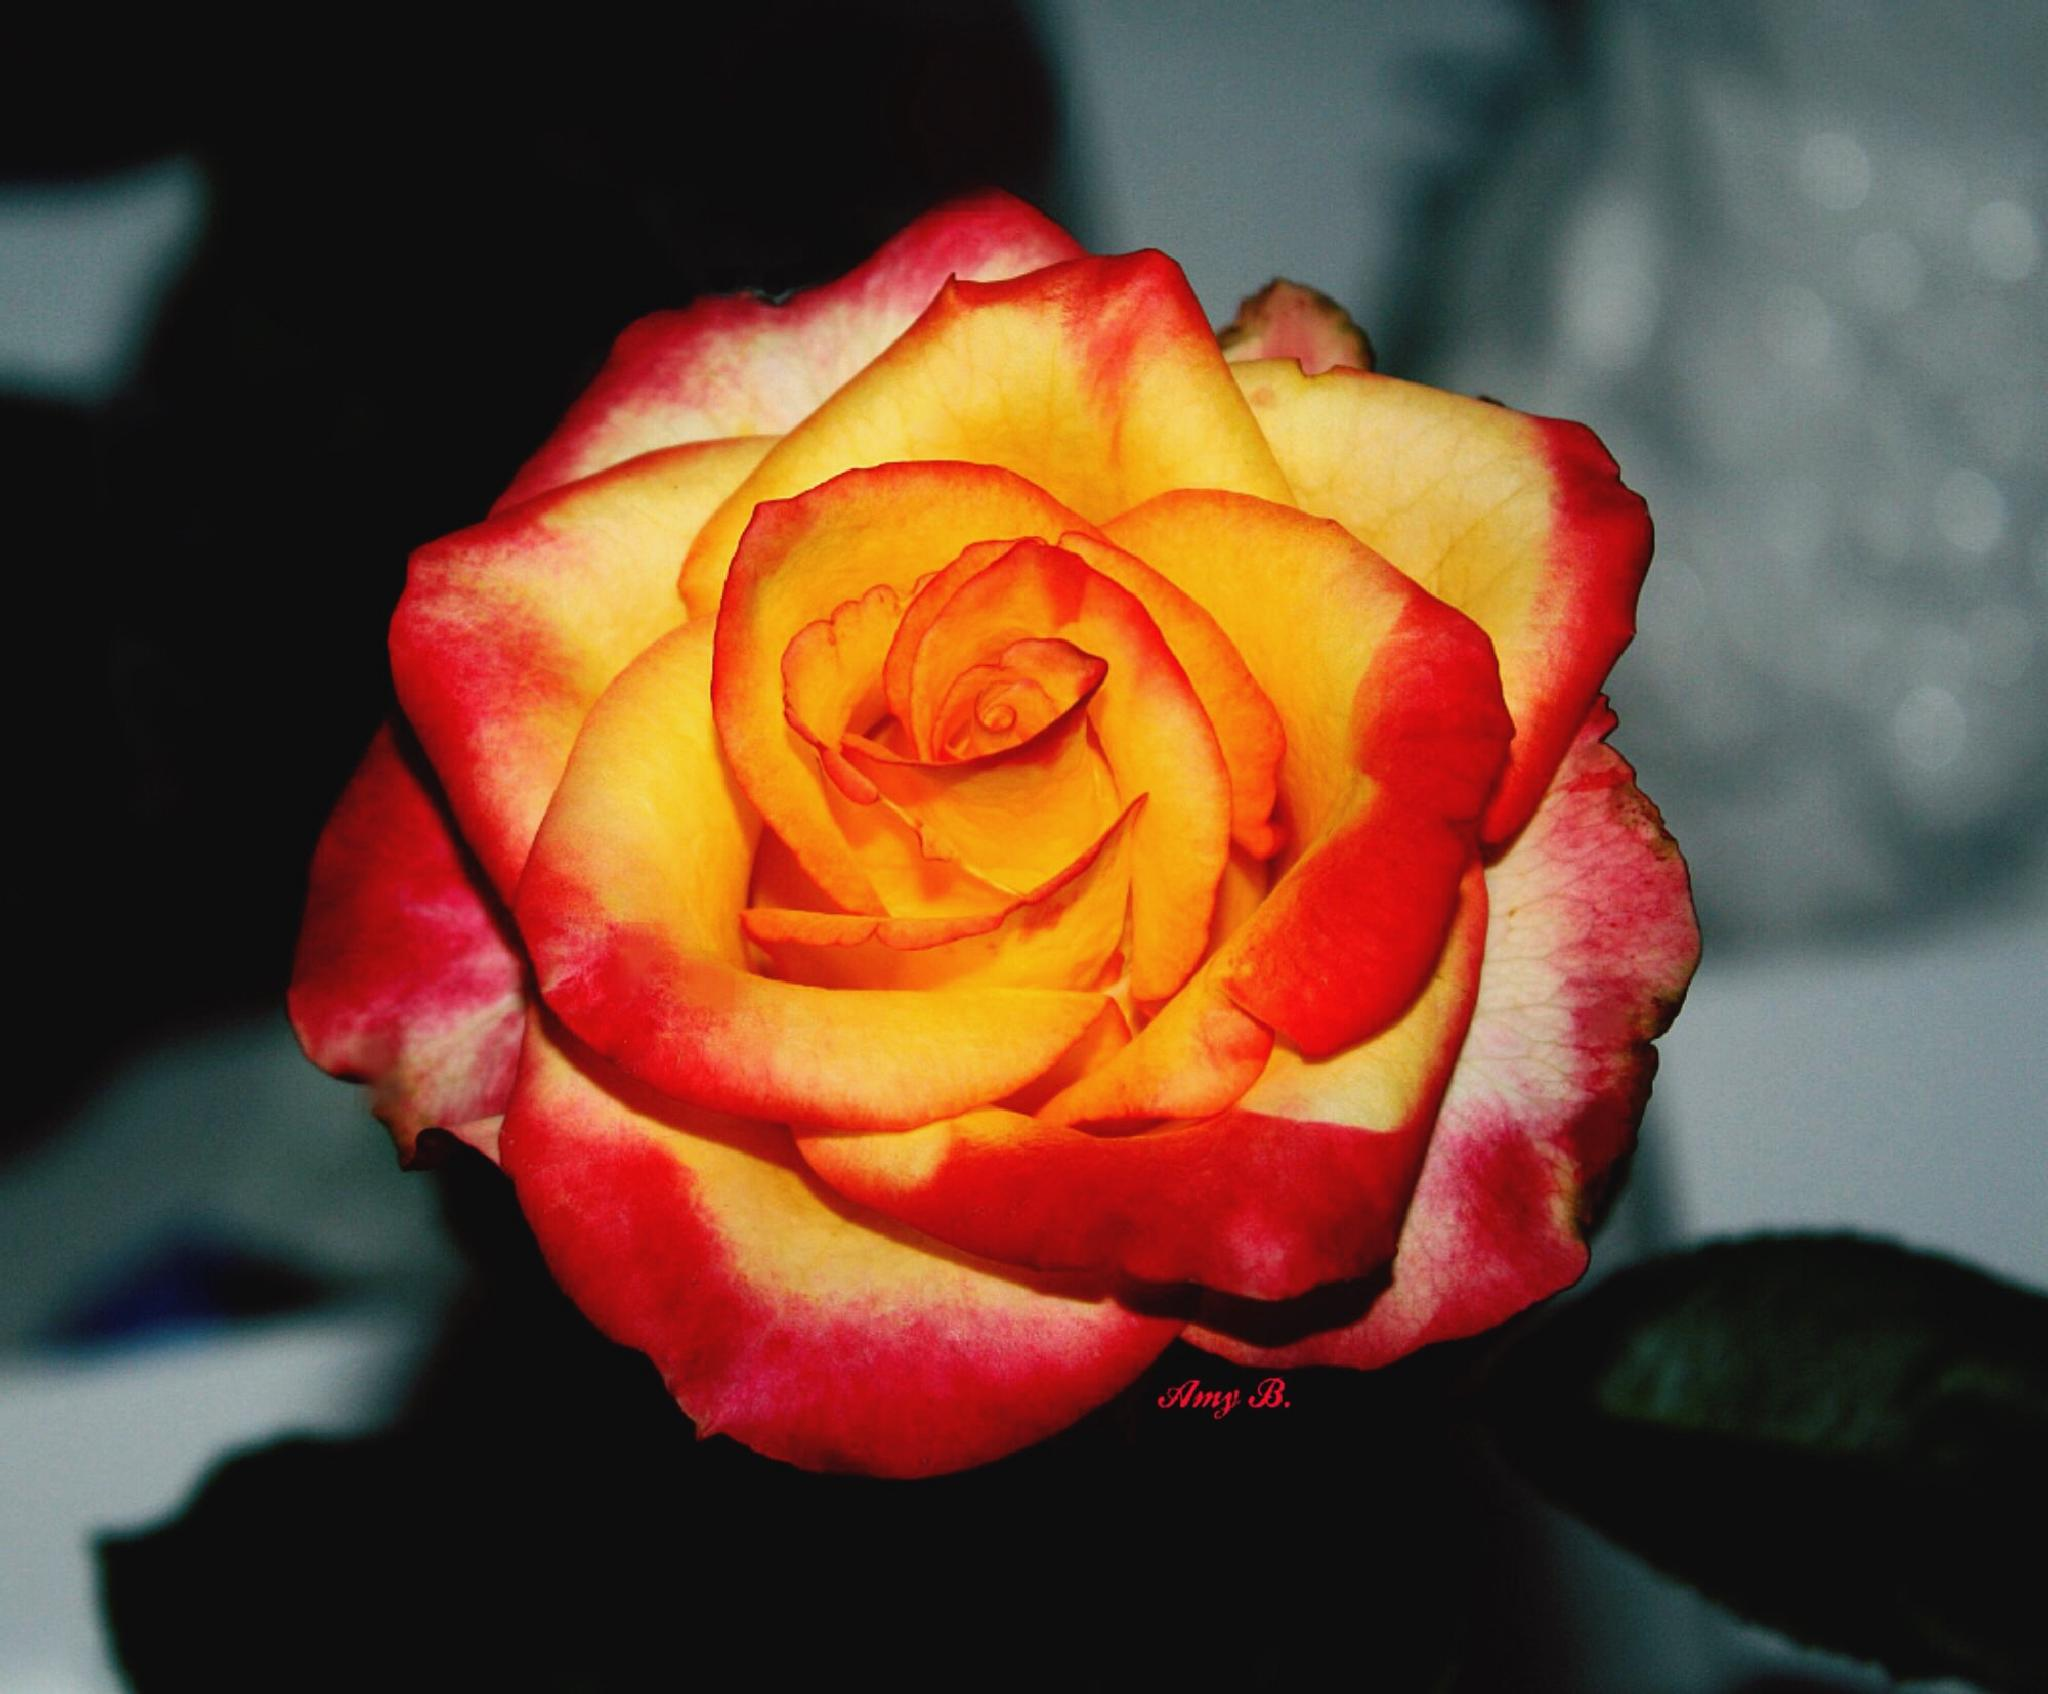 Flaming rose by amy.conger.9